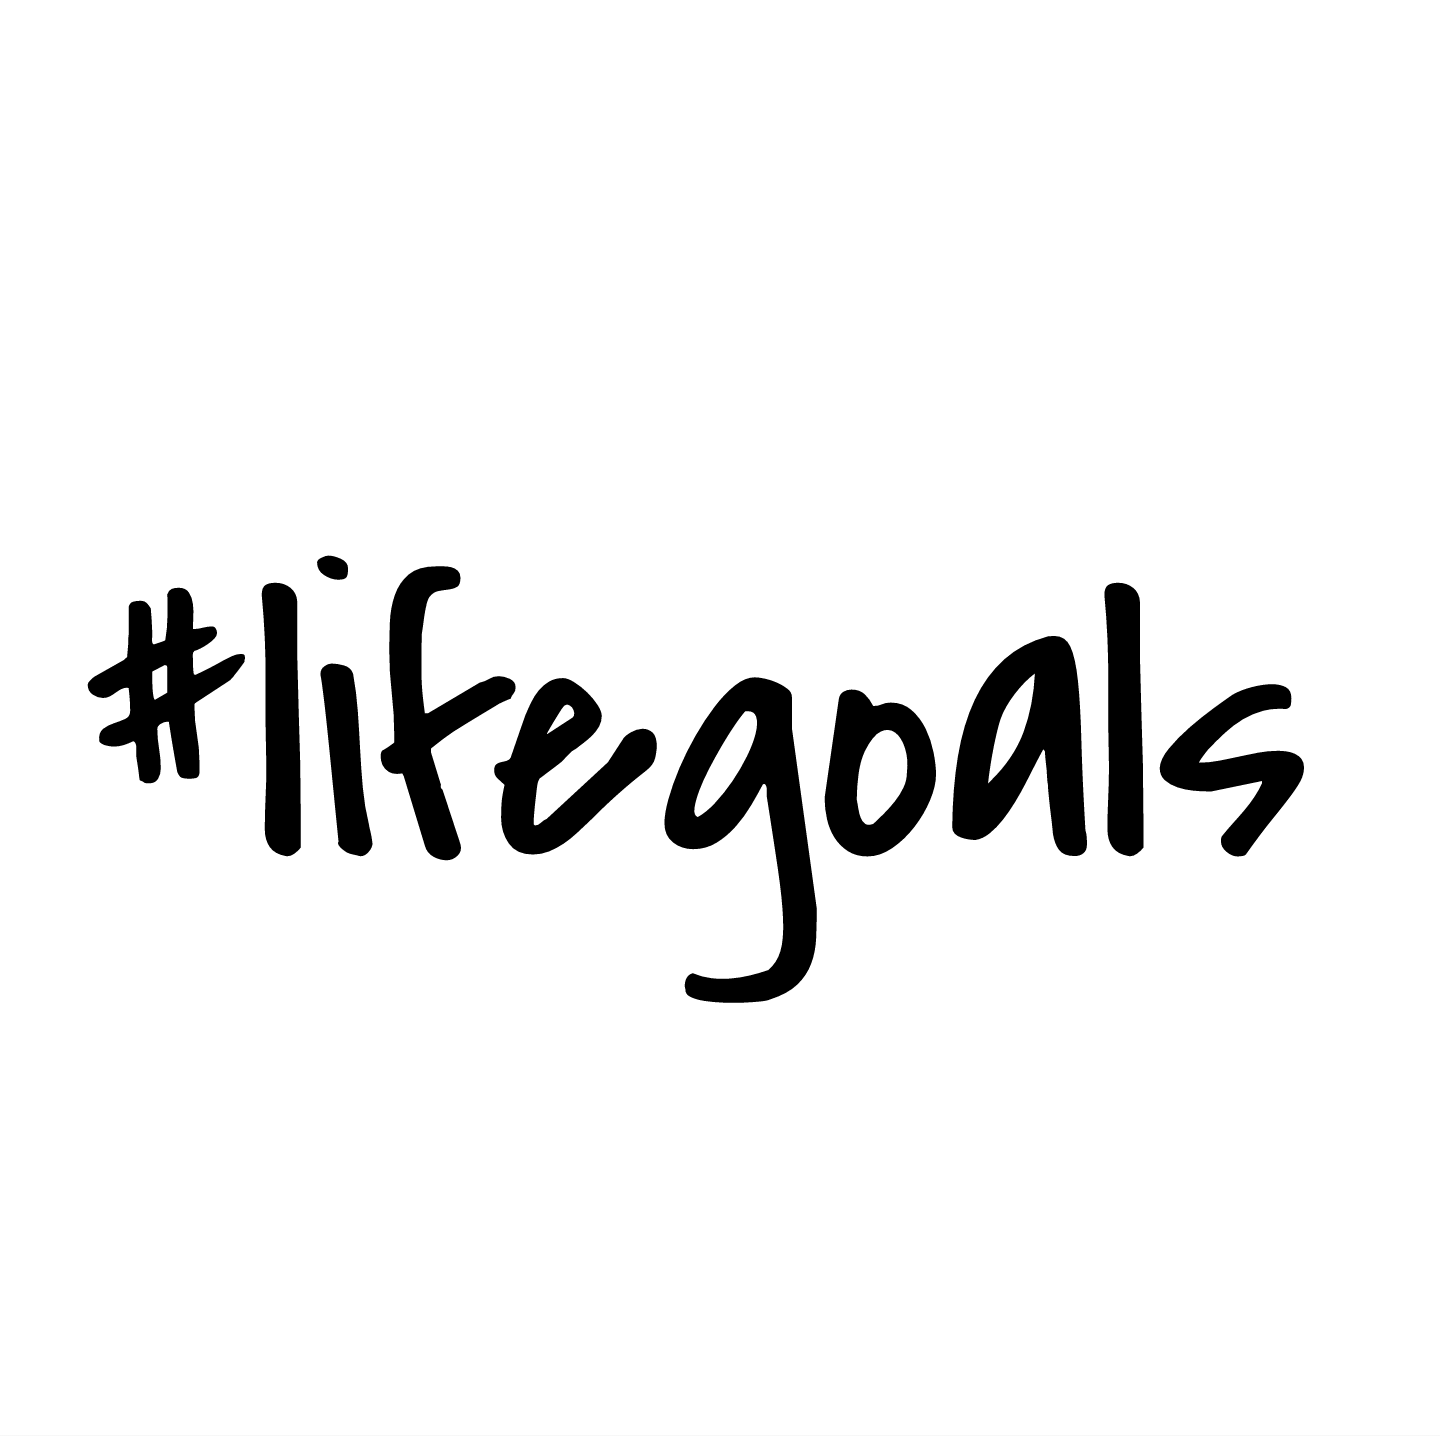 Daily Inspiration – Life Goals [Image]